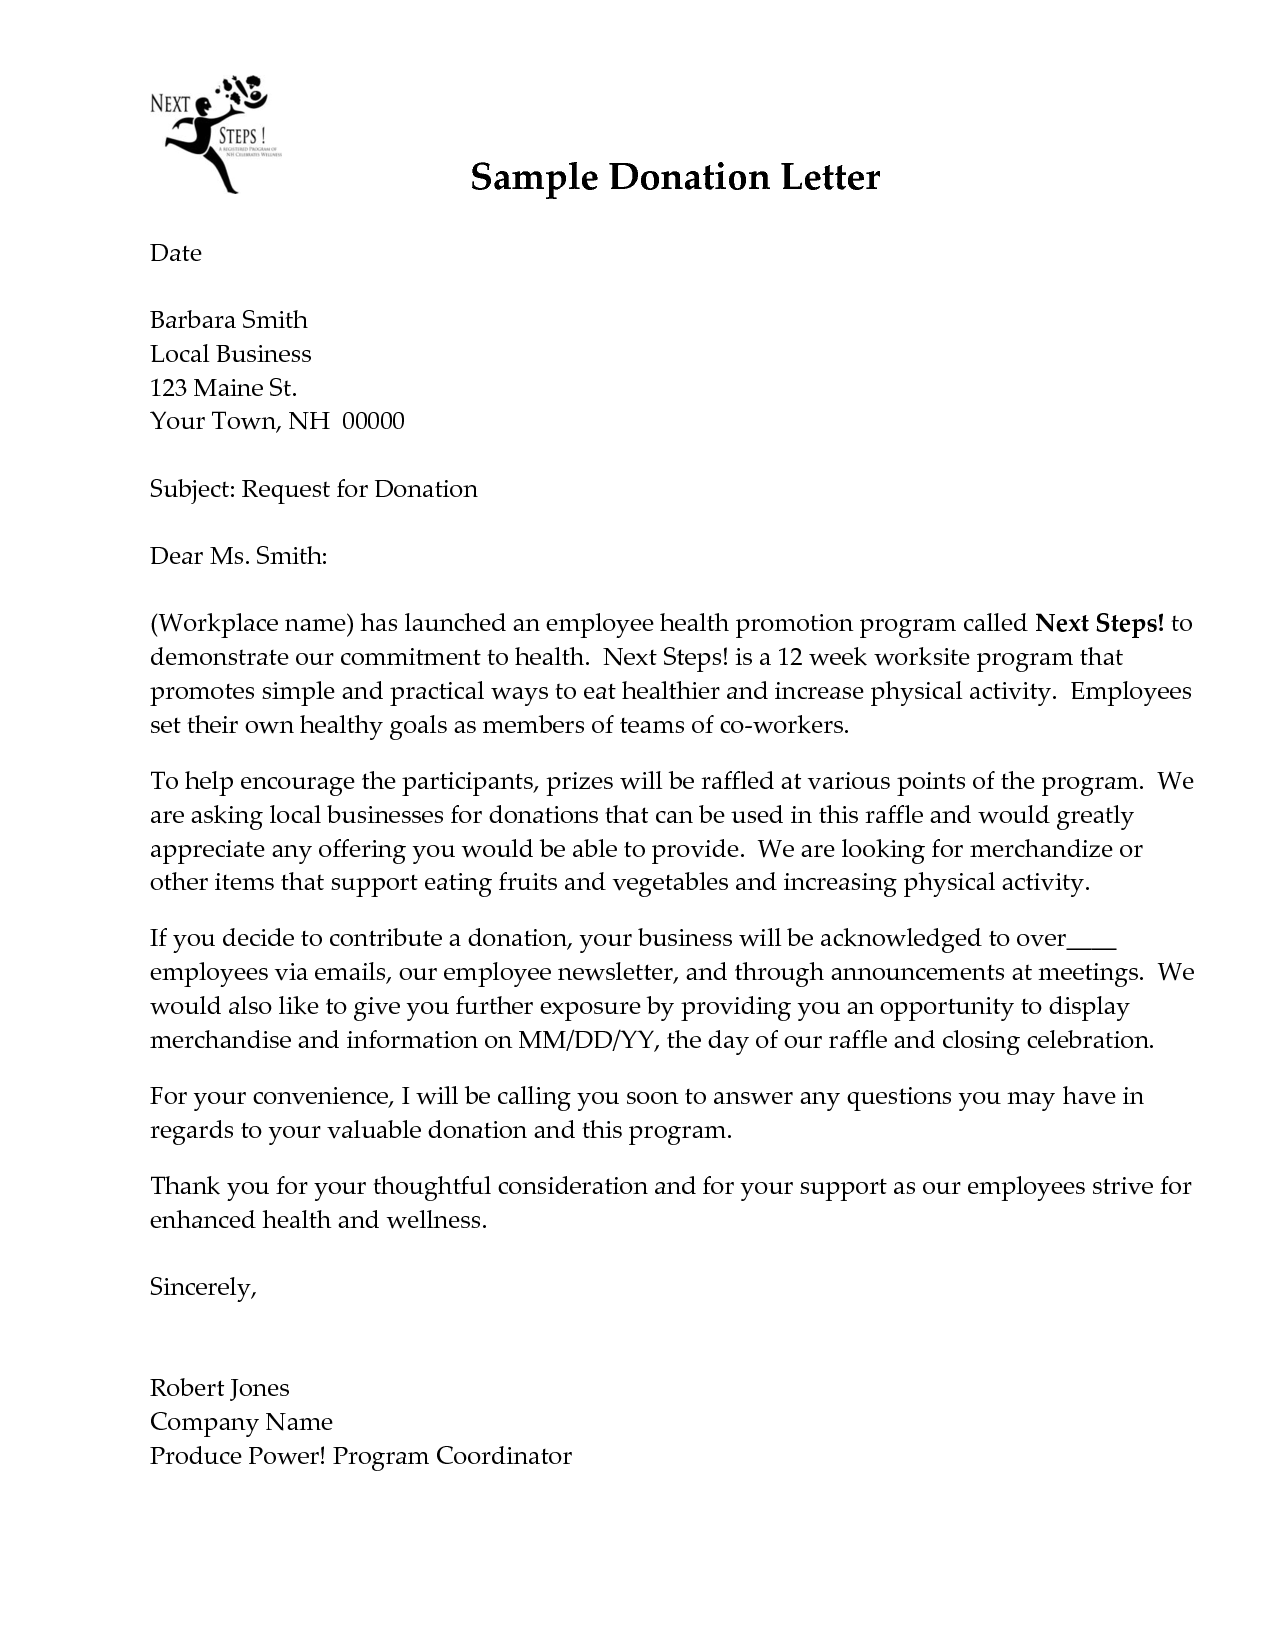 Donations Christmas Donation Request Letter And Business Formal